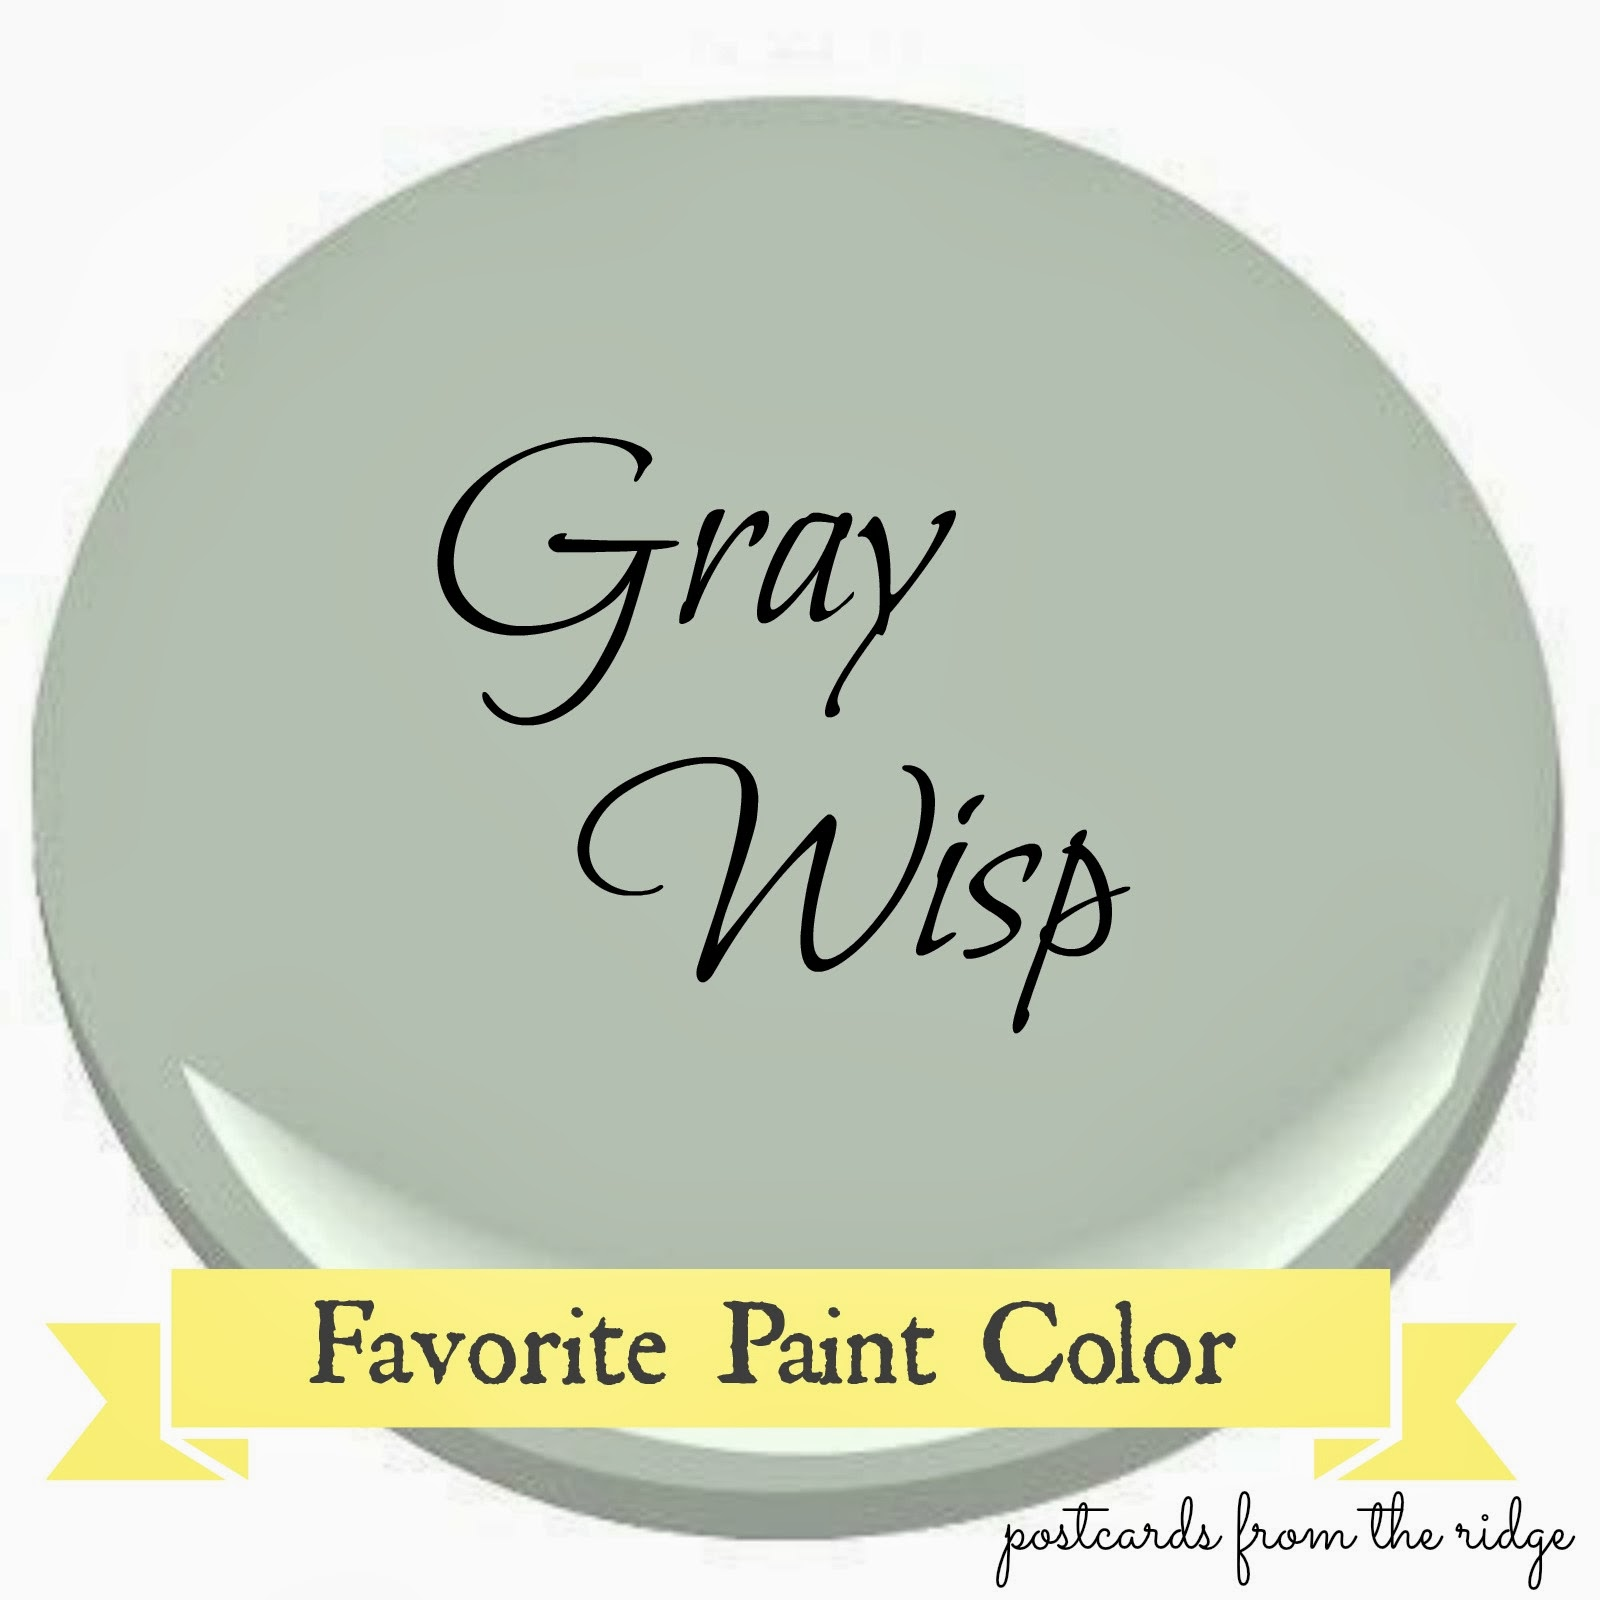 Benjamin Moore Gray Wisp Favorite Paint Color Postcards from the